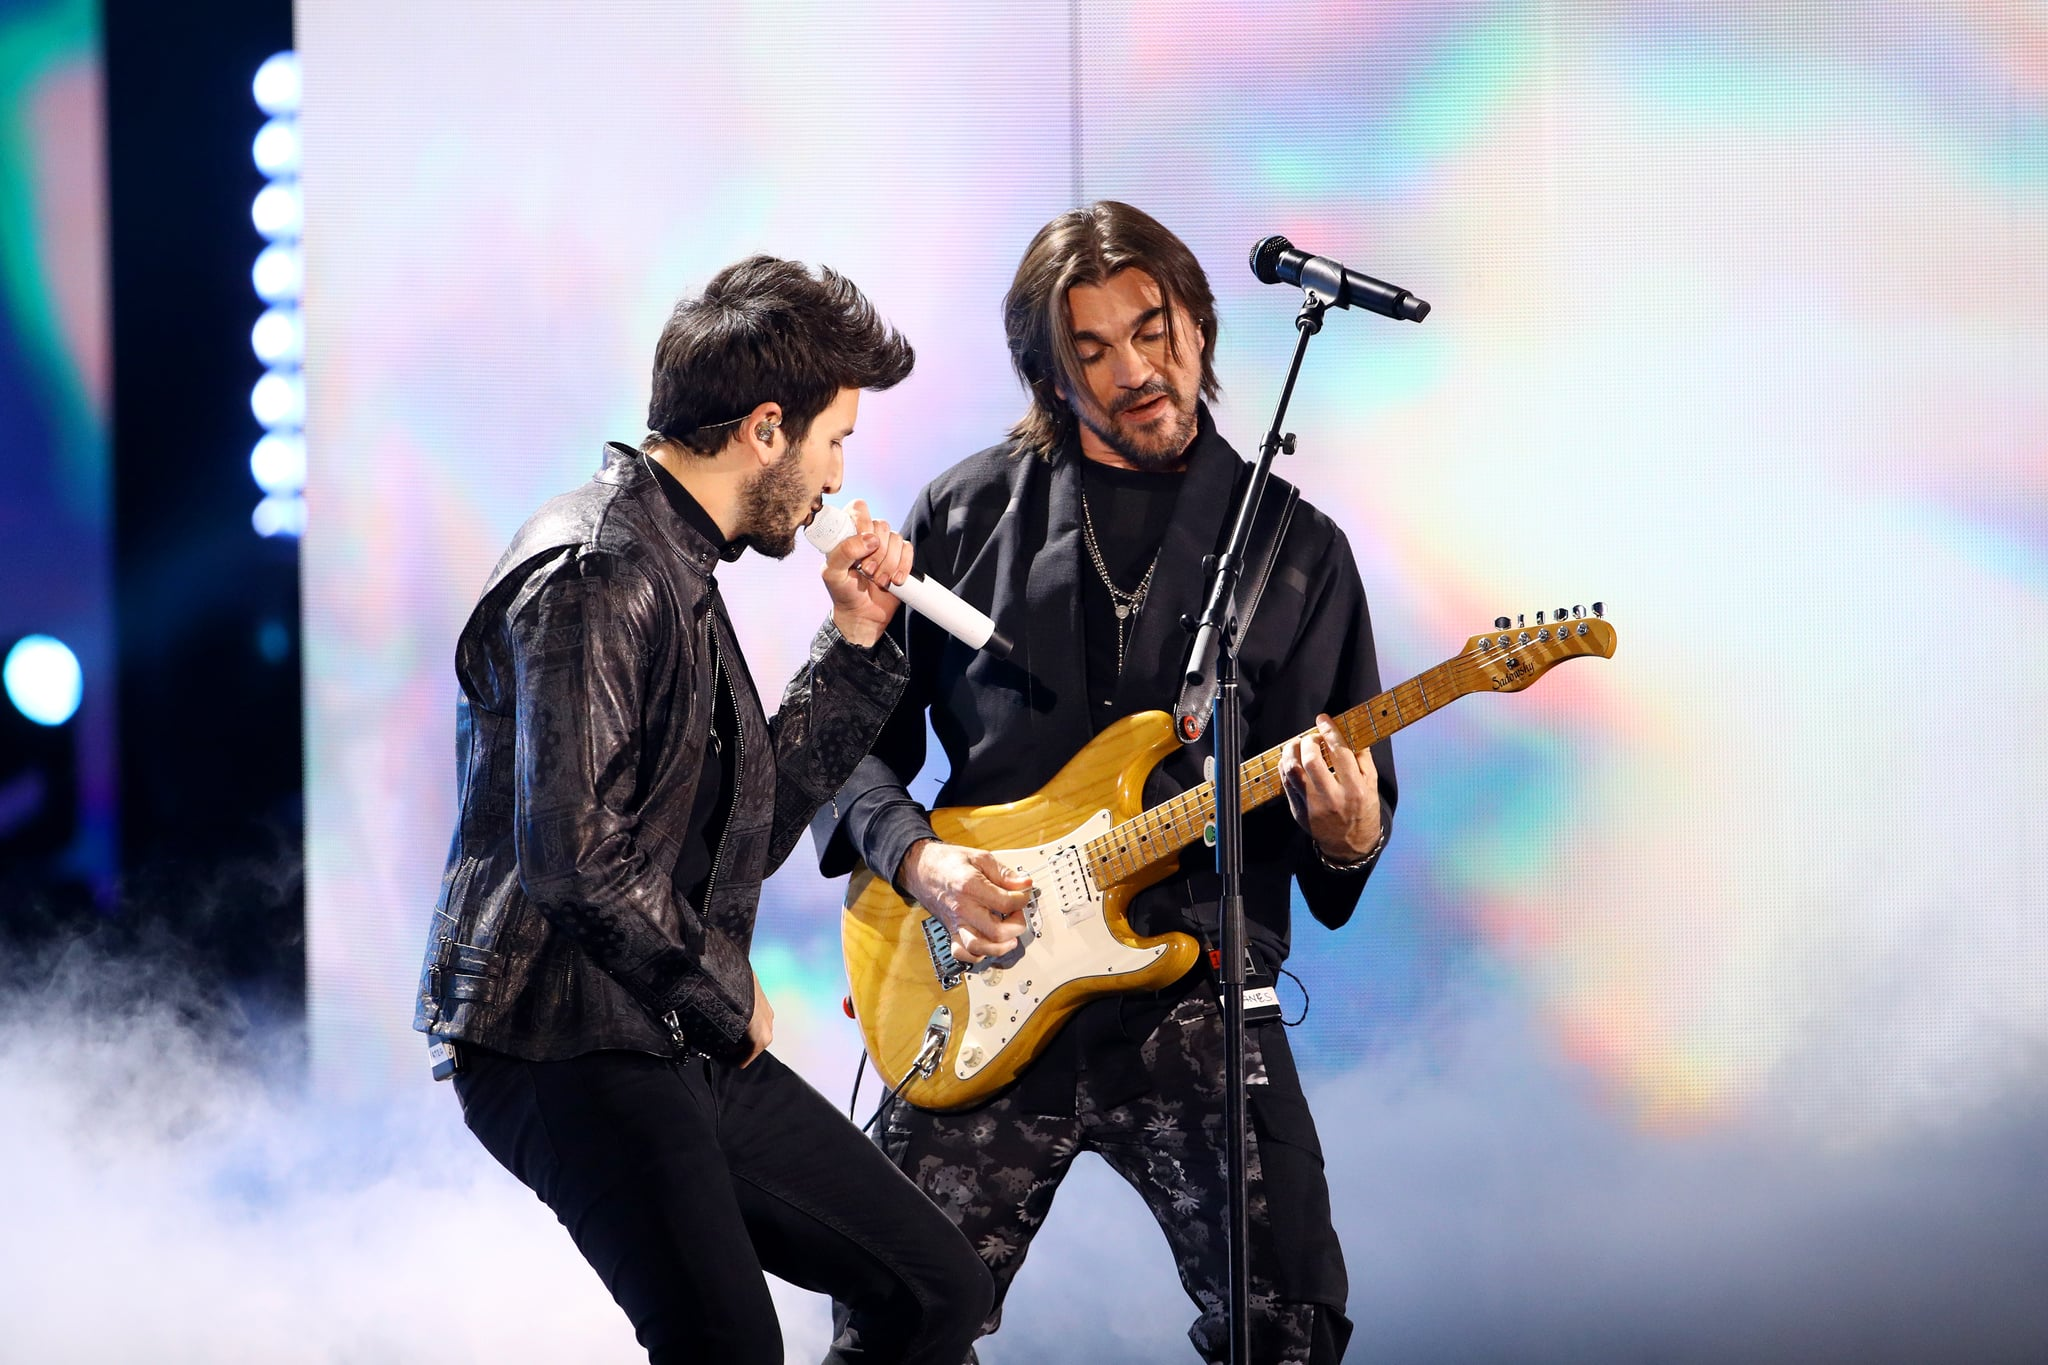 LAS VEGAS, NEVADA - NOVEMBER 14: (L-R) Sebastian Yatra and Juanes perform onstage during the 20th annual Latin GRAMMY Awards at MGM Grand Garden Arena on November 14, 2019 in Las Vegas, Nevada. (Photo by Rich Fury/Getty Images)